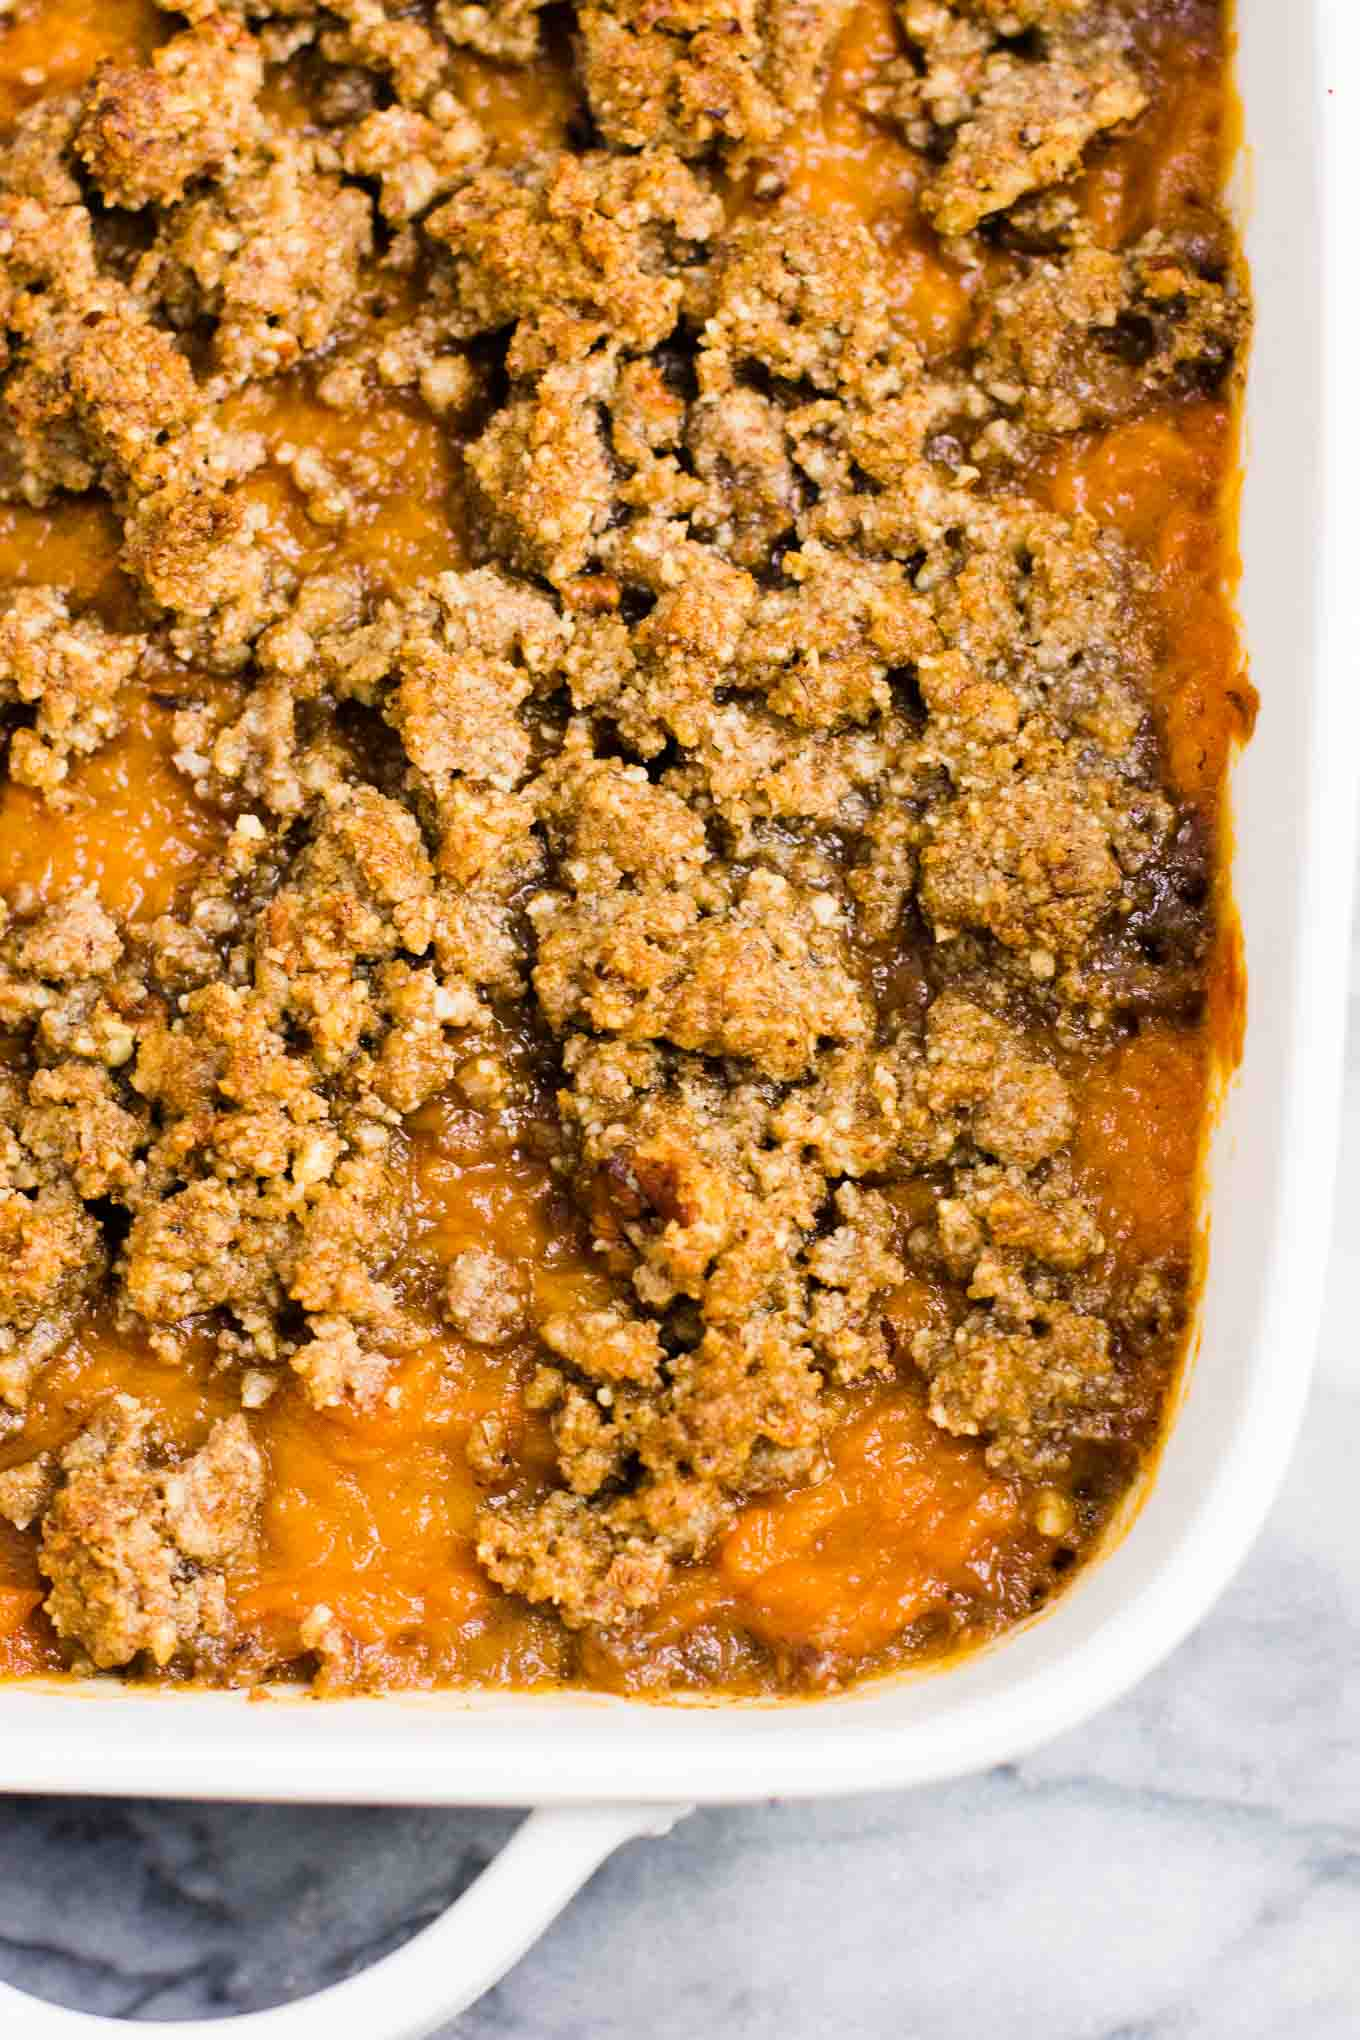 Vegan Sweet Potato Casserole With Pecan Crumble